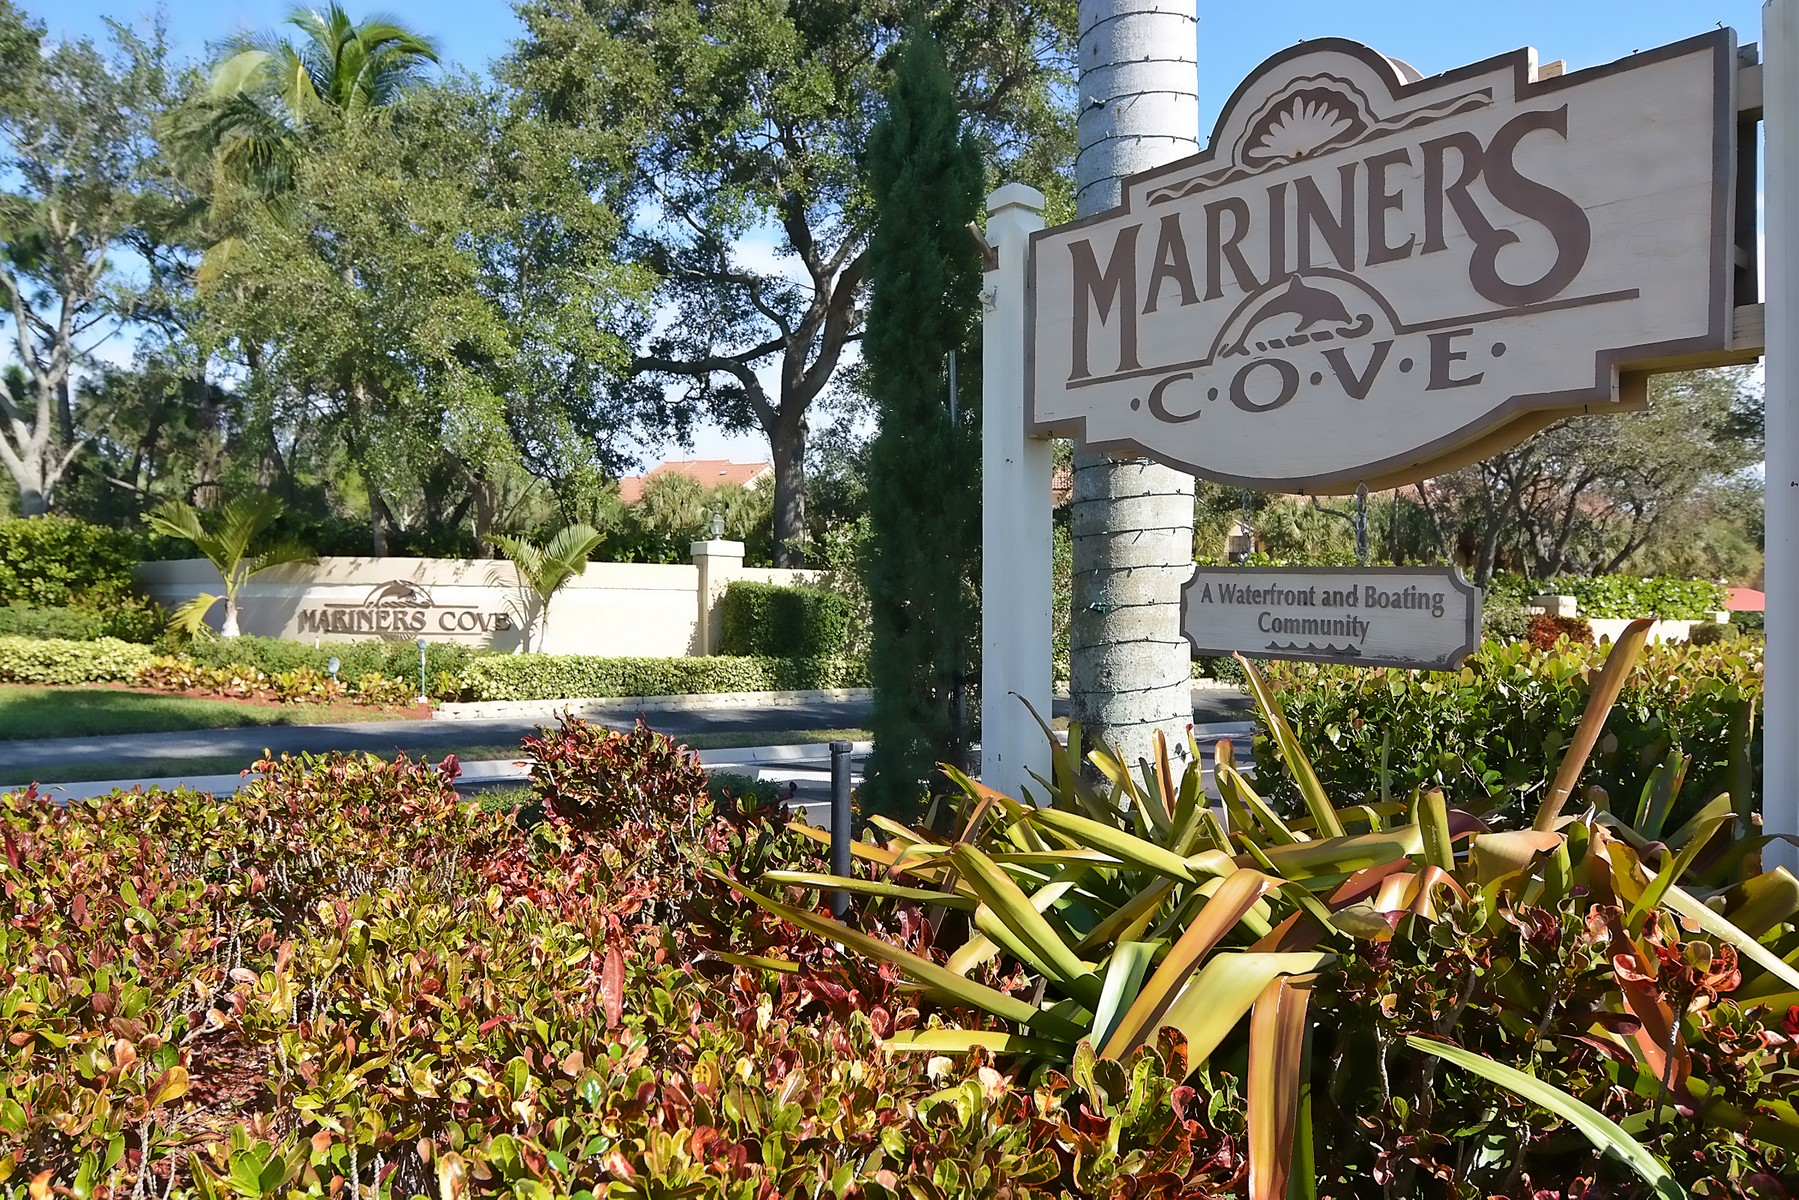 Townhouse for Sale at 2379 Treasure Isle Drive 25 Mariners Cove, Palm Beach Gardens, Florida, 33410 United States